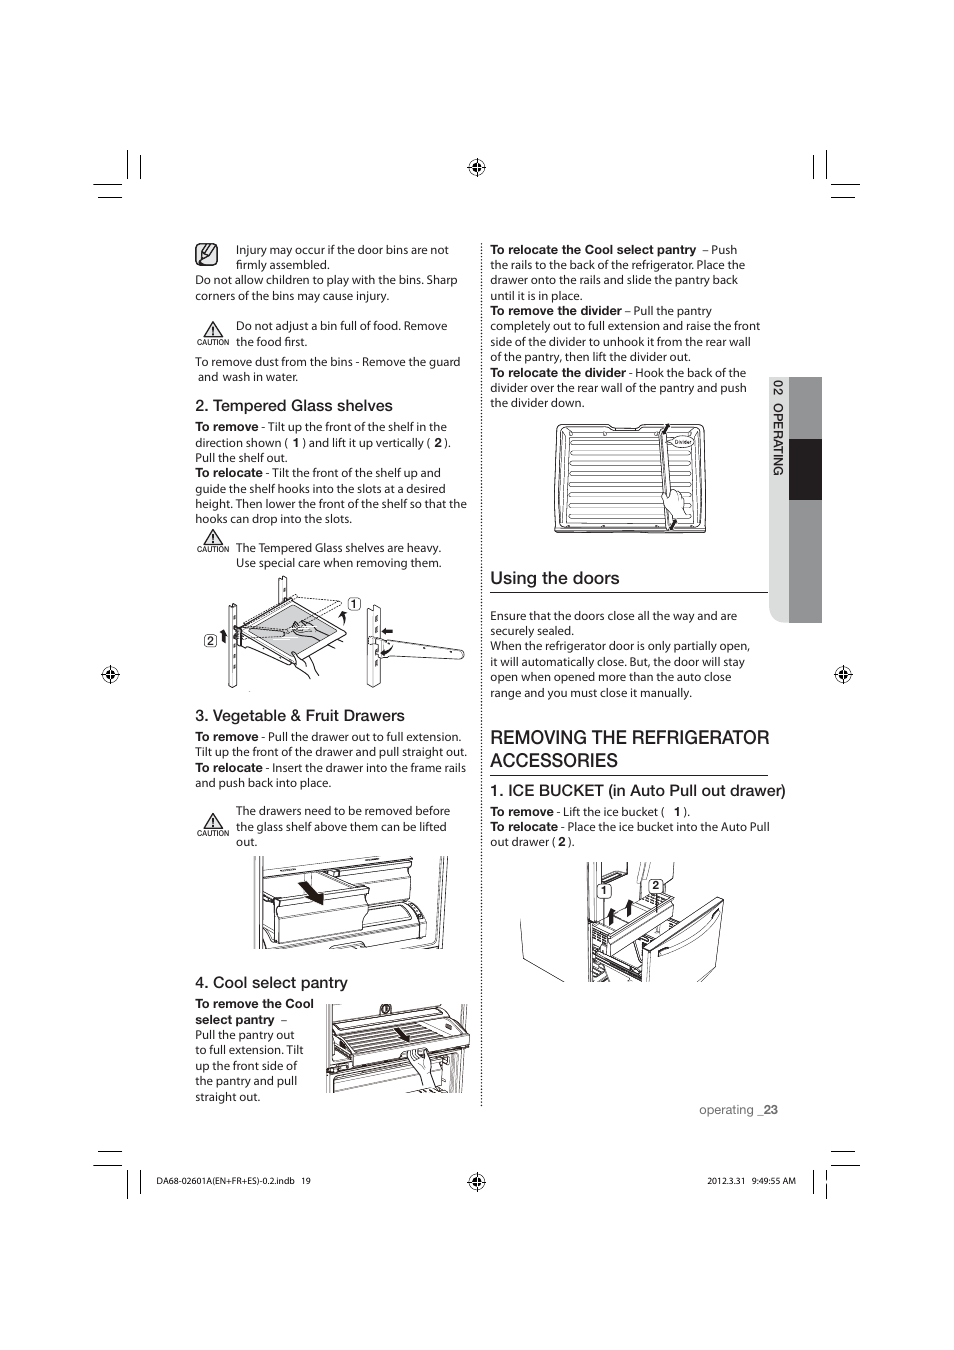 Removing the refrigerator accessories, Using the doors